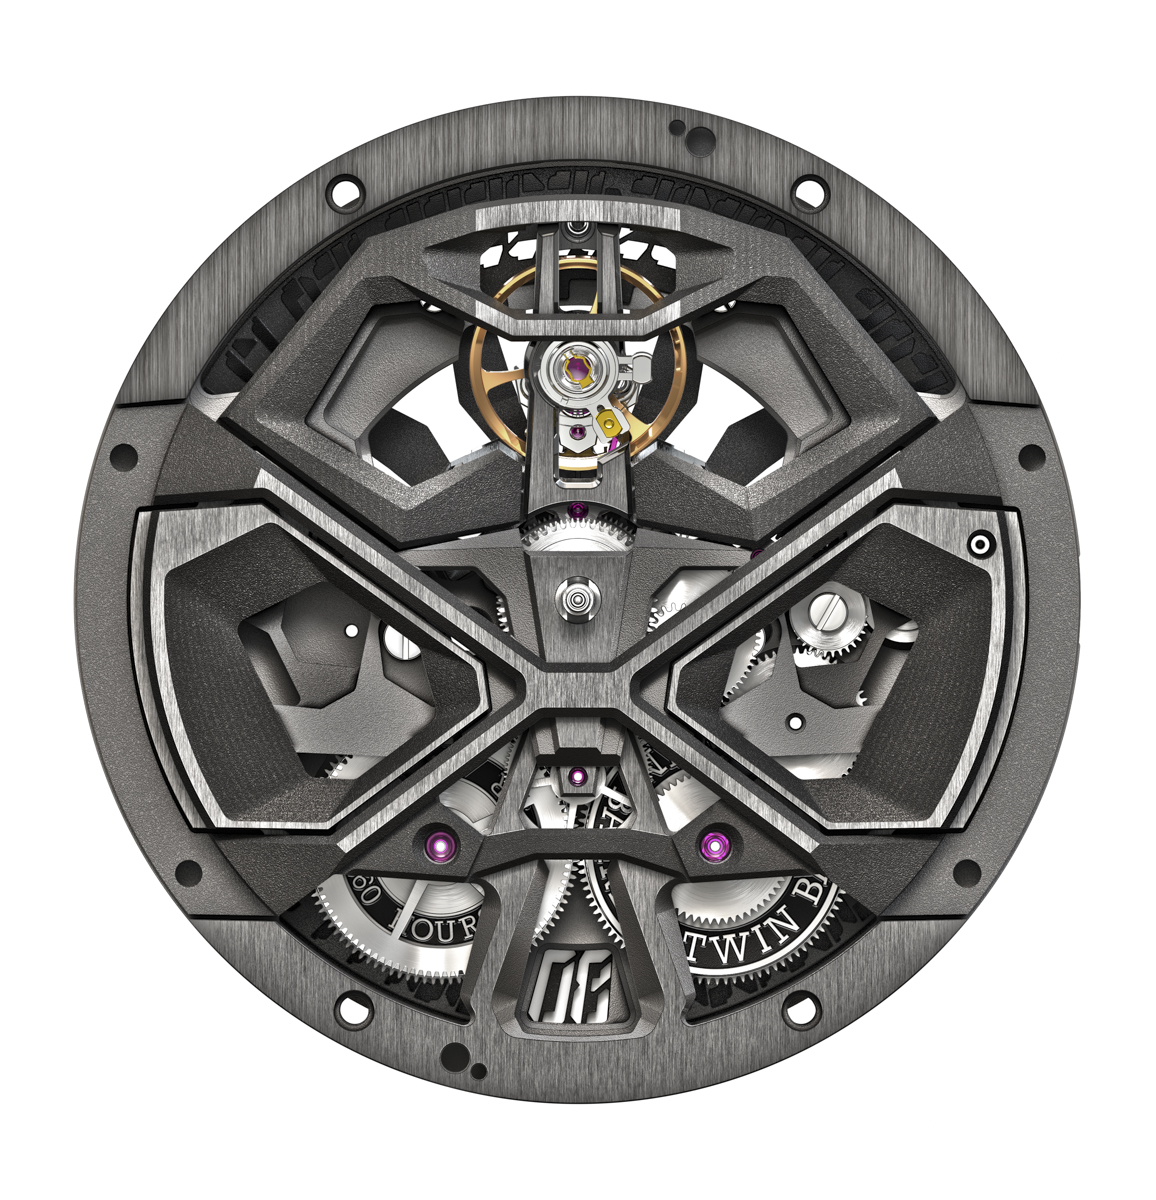 Roger Dubuis Excalibur Huracán Performante - Movement